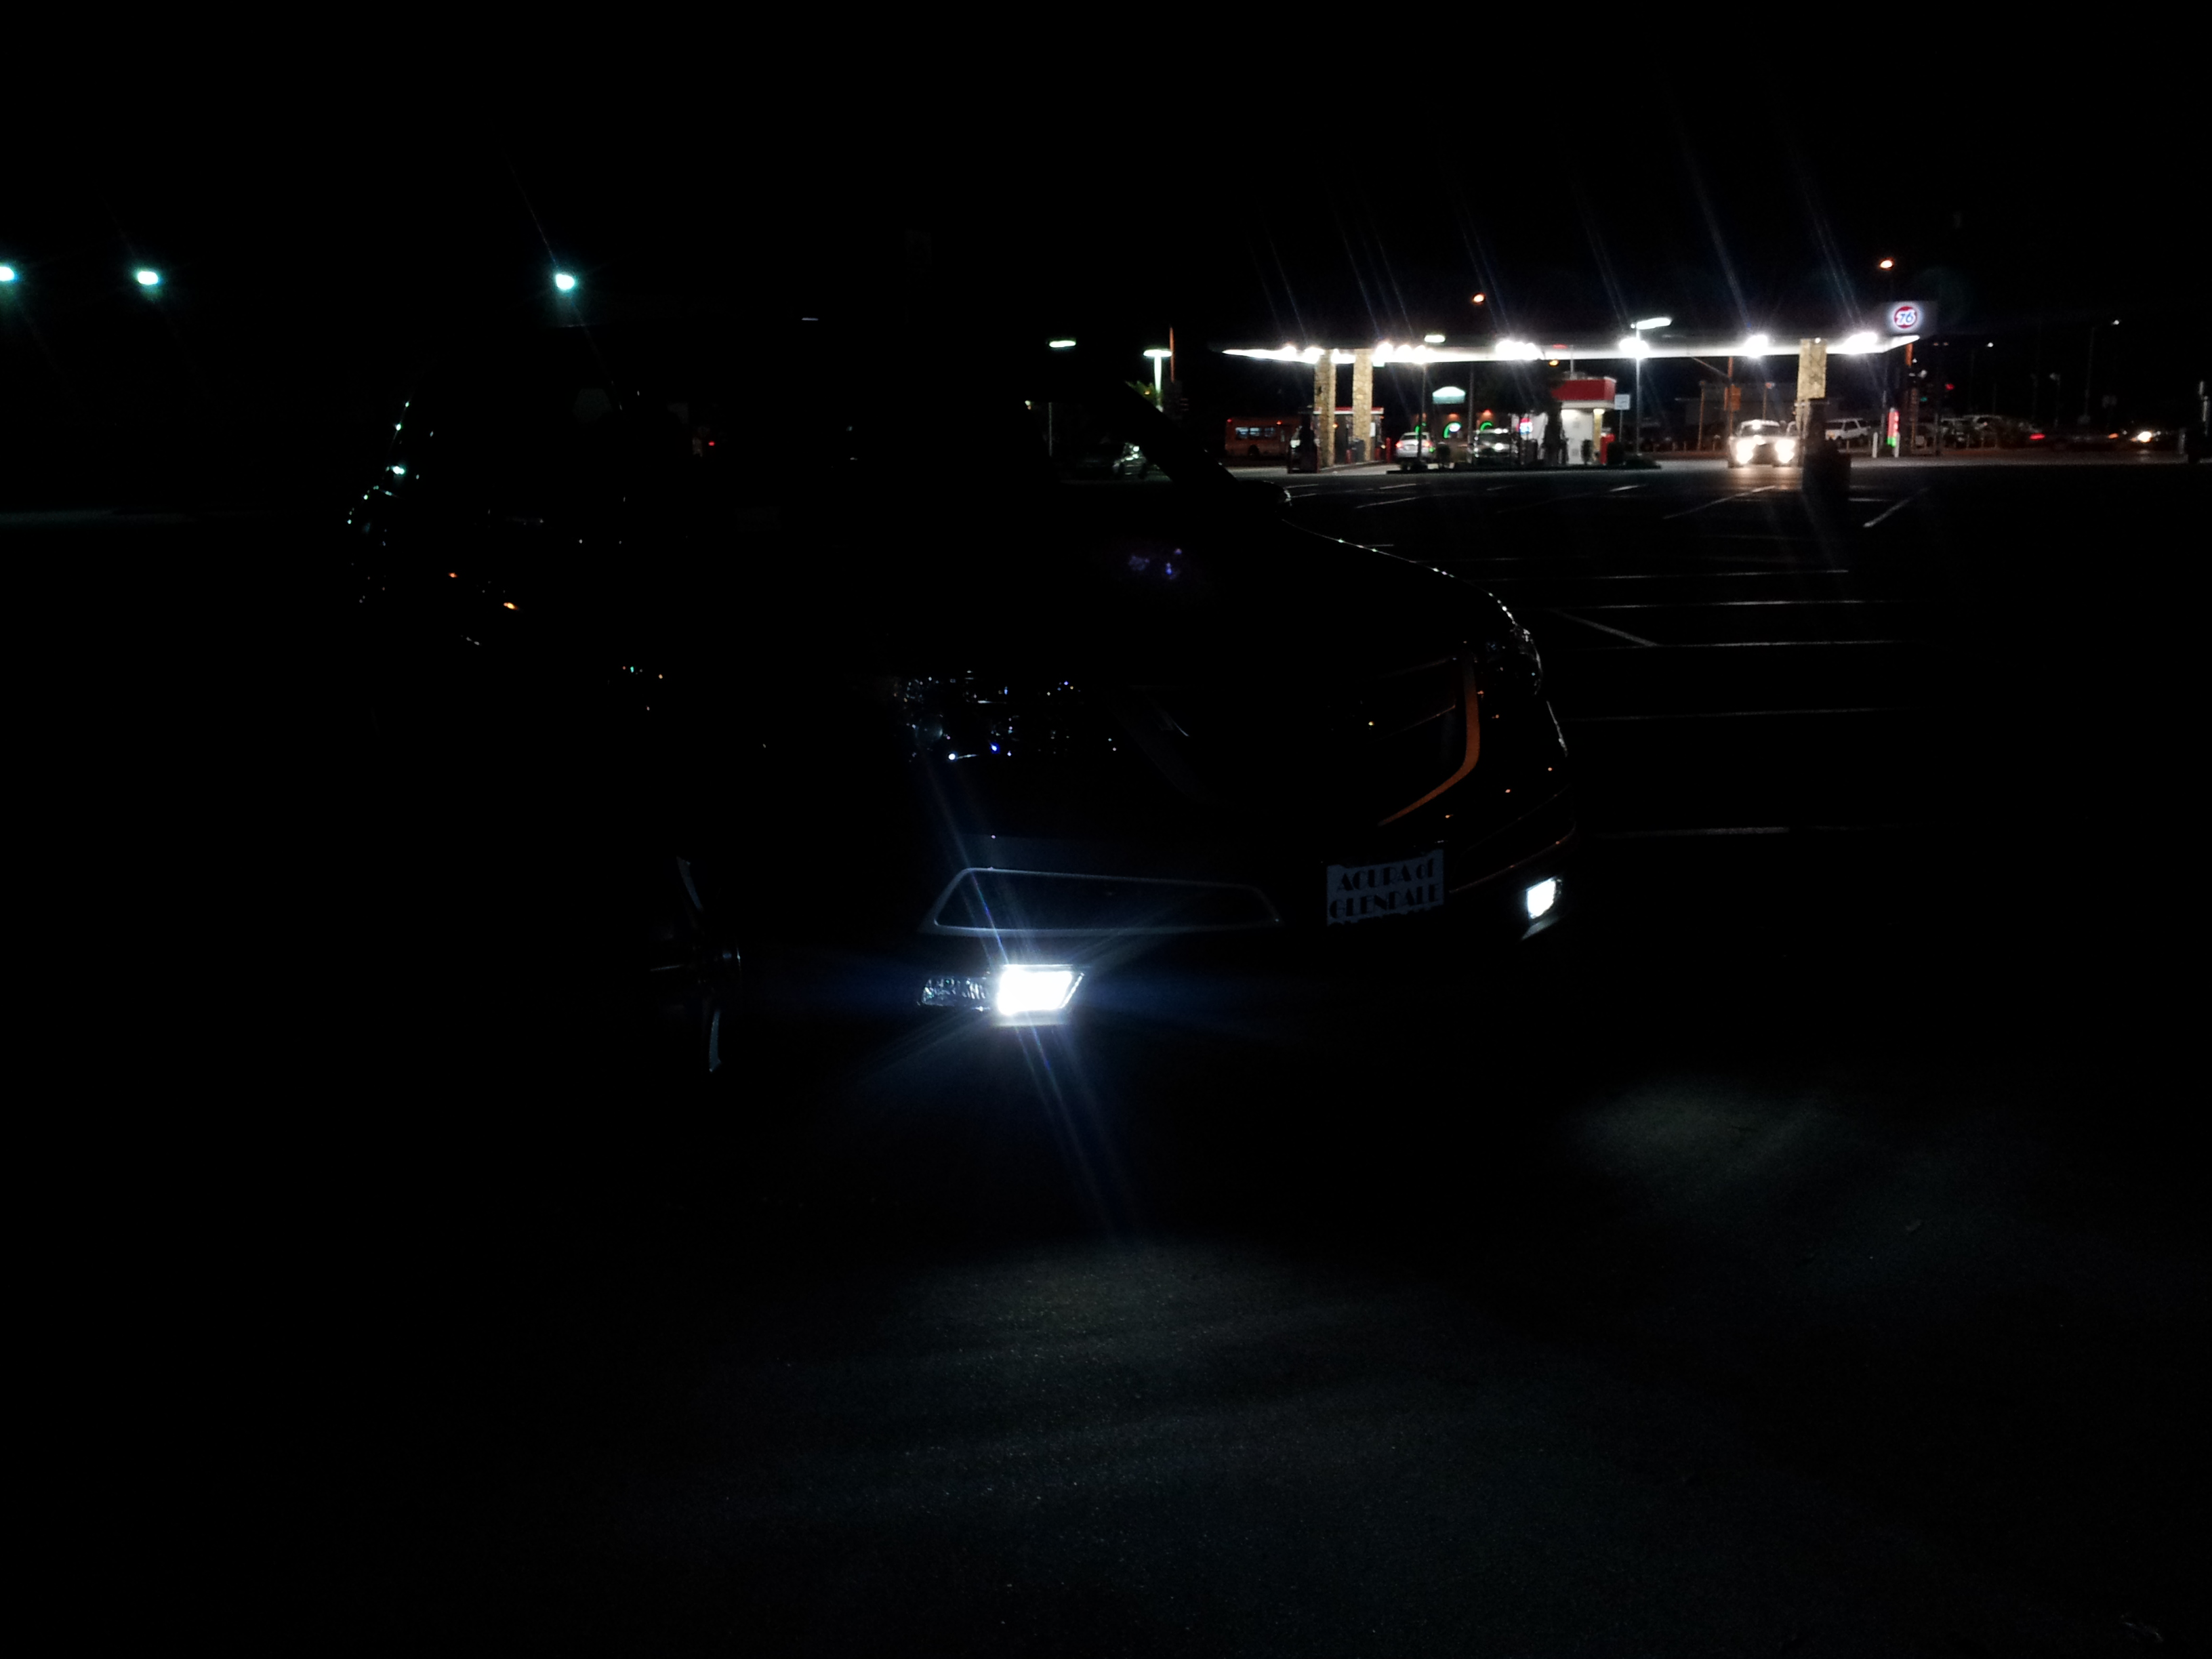 HID Fog/LED DRL Installed - PICS-20121025_214253.jpg